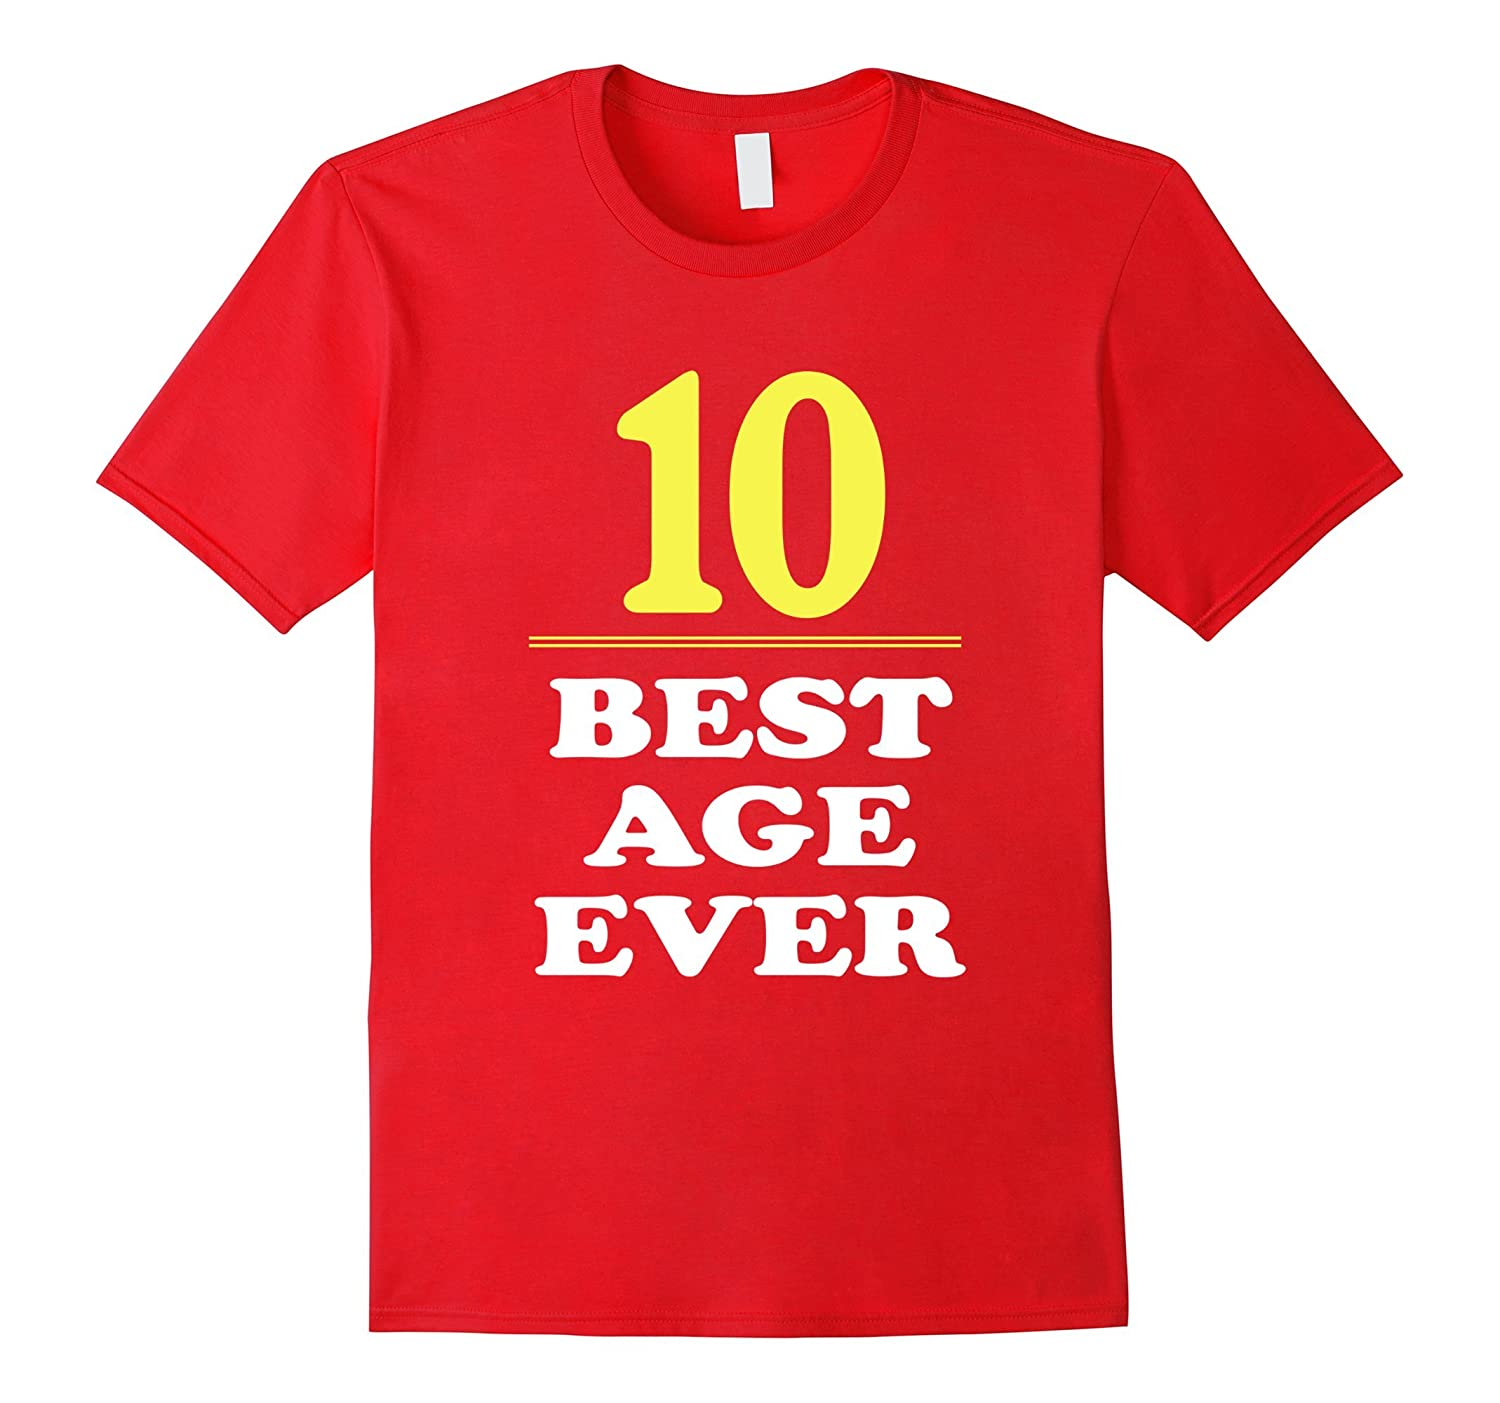 10 Best Age Ever Shirt 10 Years Old 10th Birthday Gift-ANZ